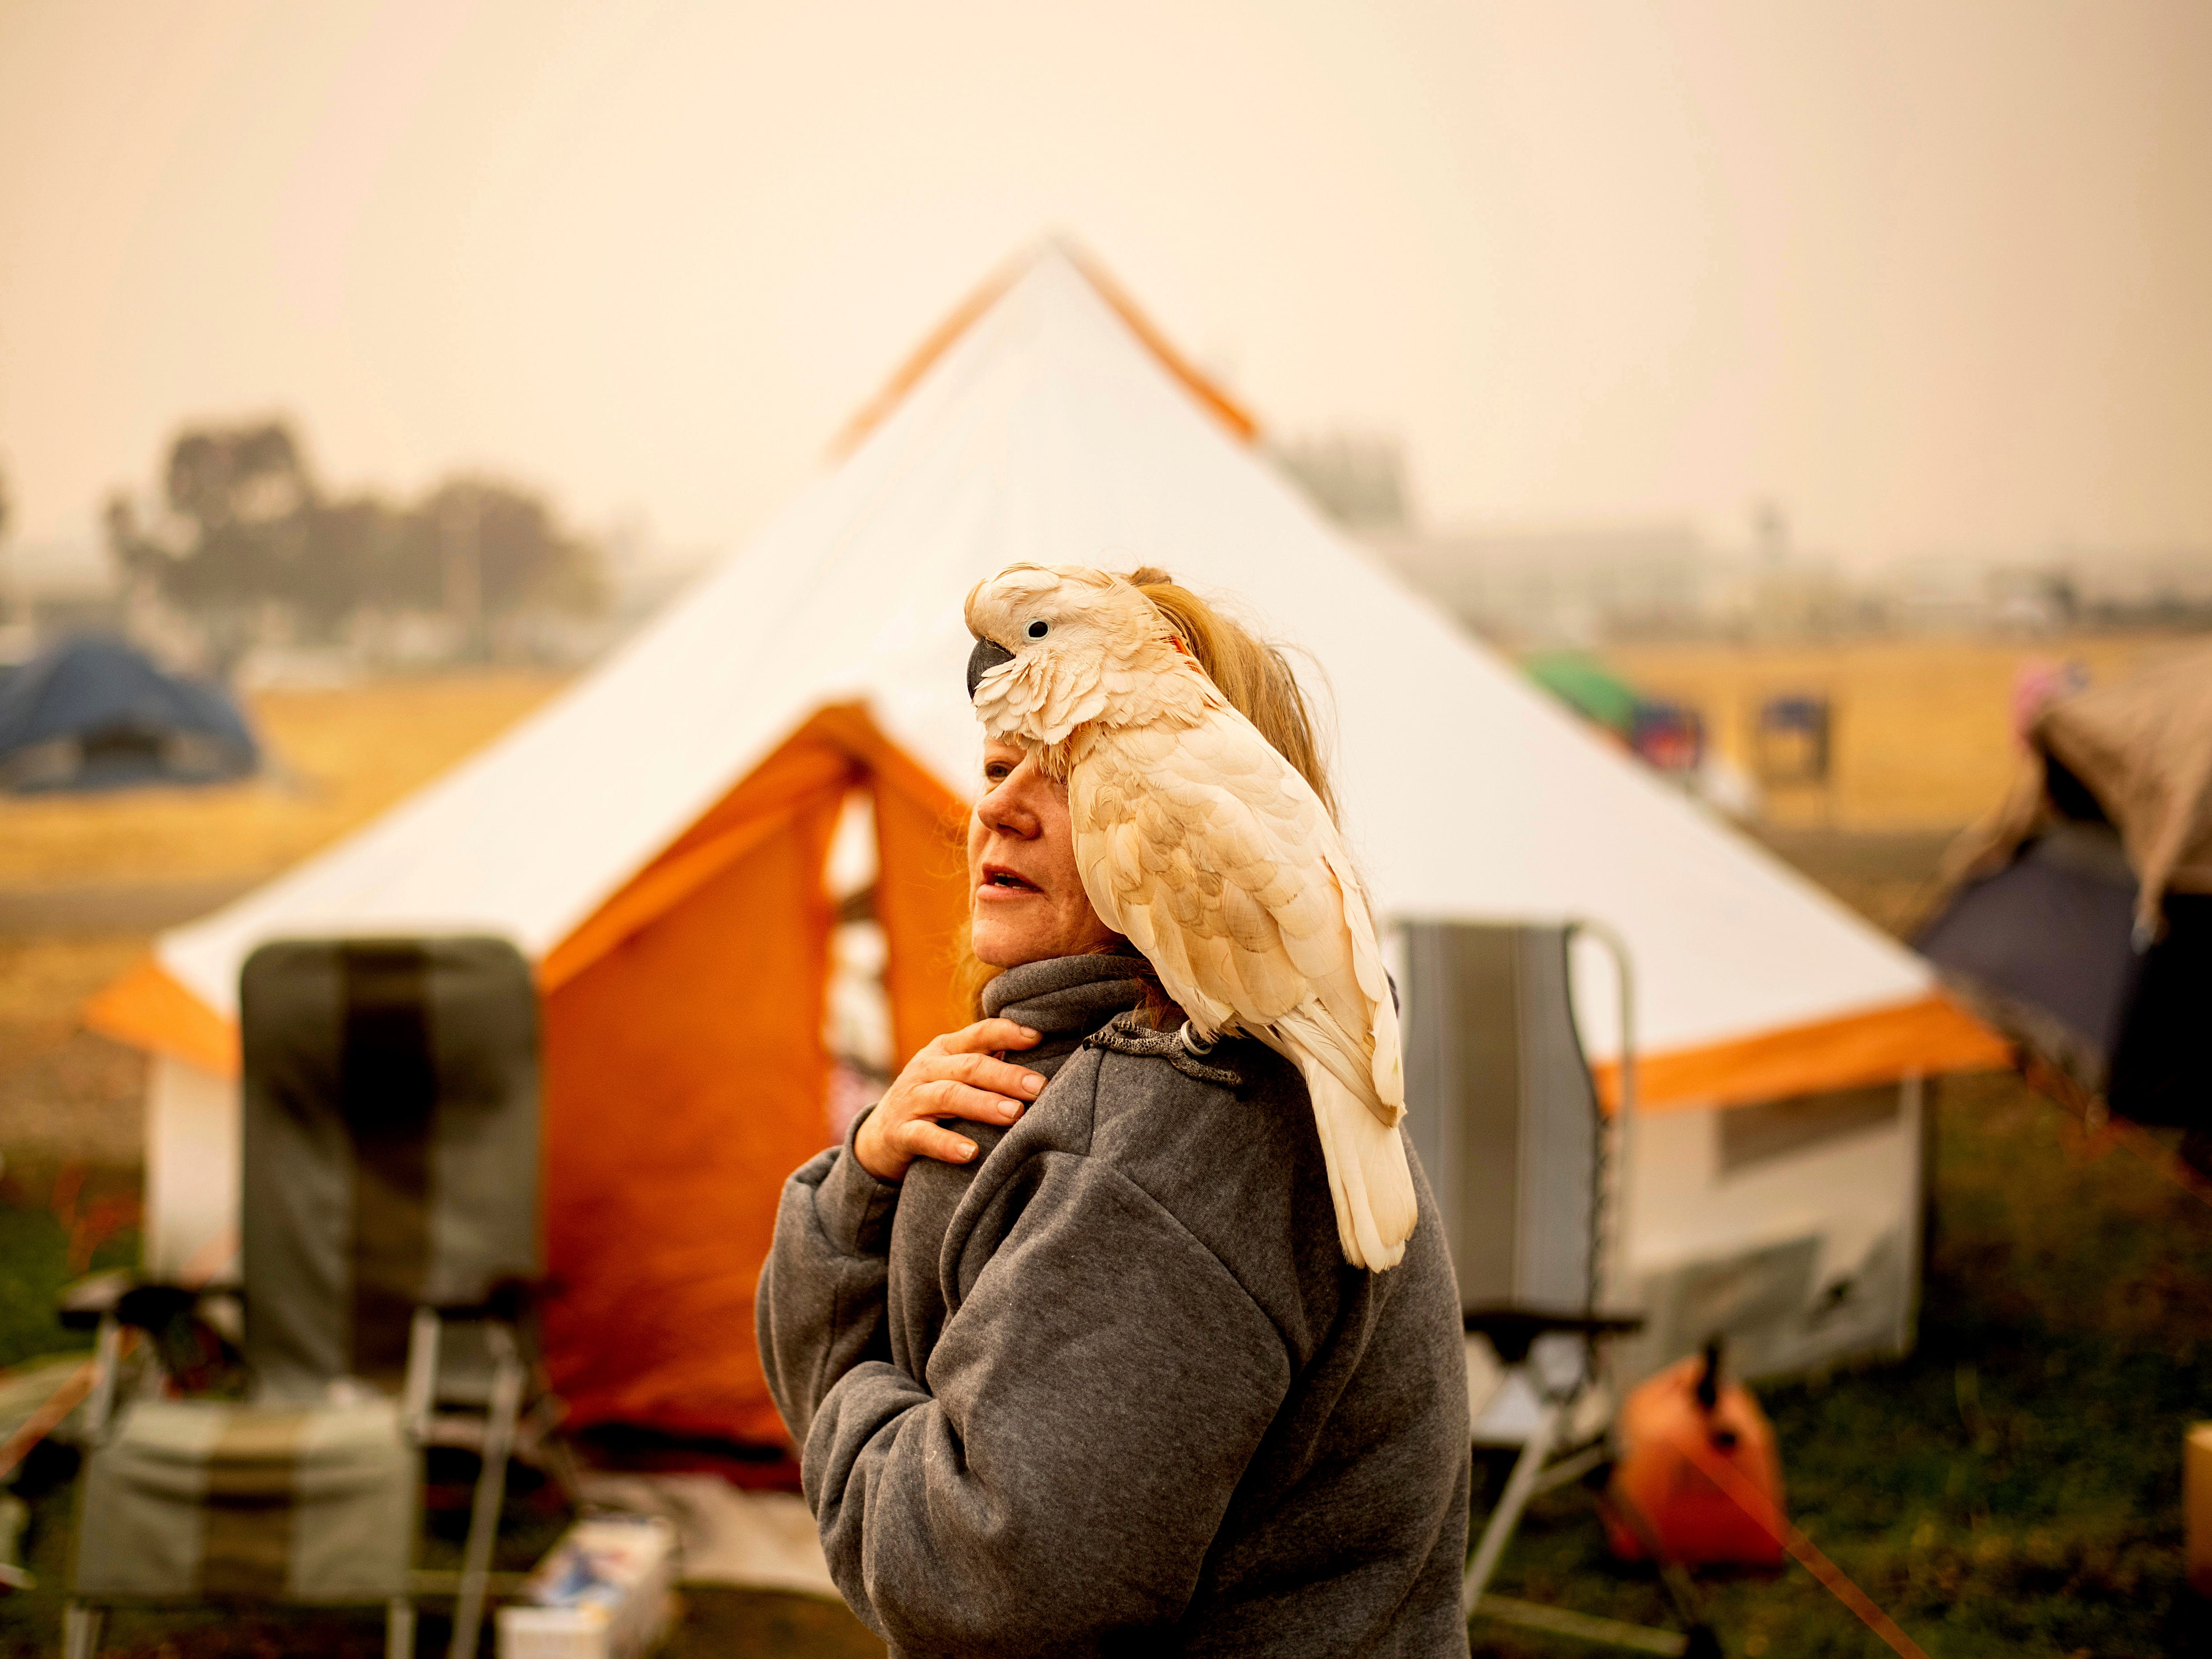 Suzanne Kaksonen, an evacuee of the Camp Fire, and her cockatoo, Buddy, camp at a makeshift shelter outside a Walmart store in Chico, Calif., on Nov. 14, 2018. Kaksonen lost her home in the blaze.